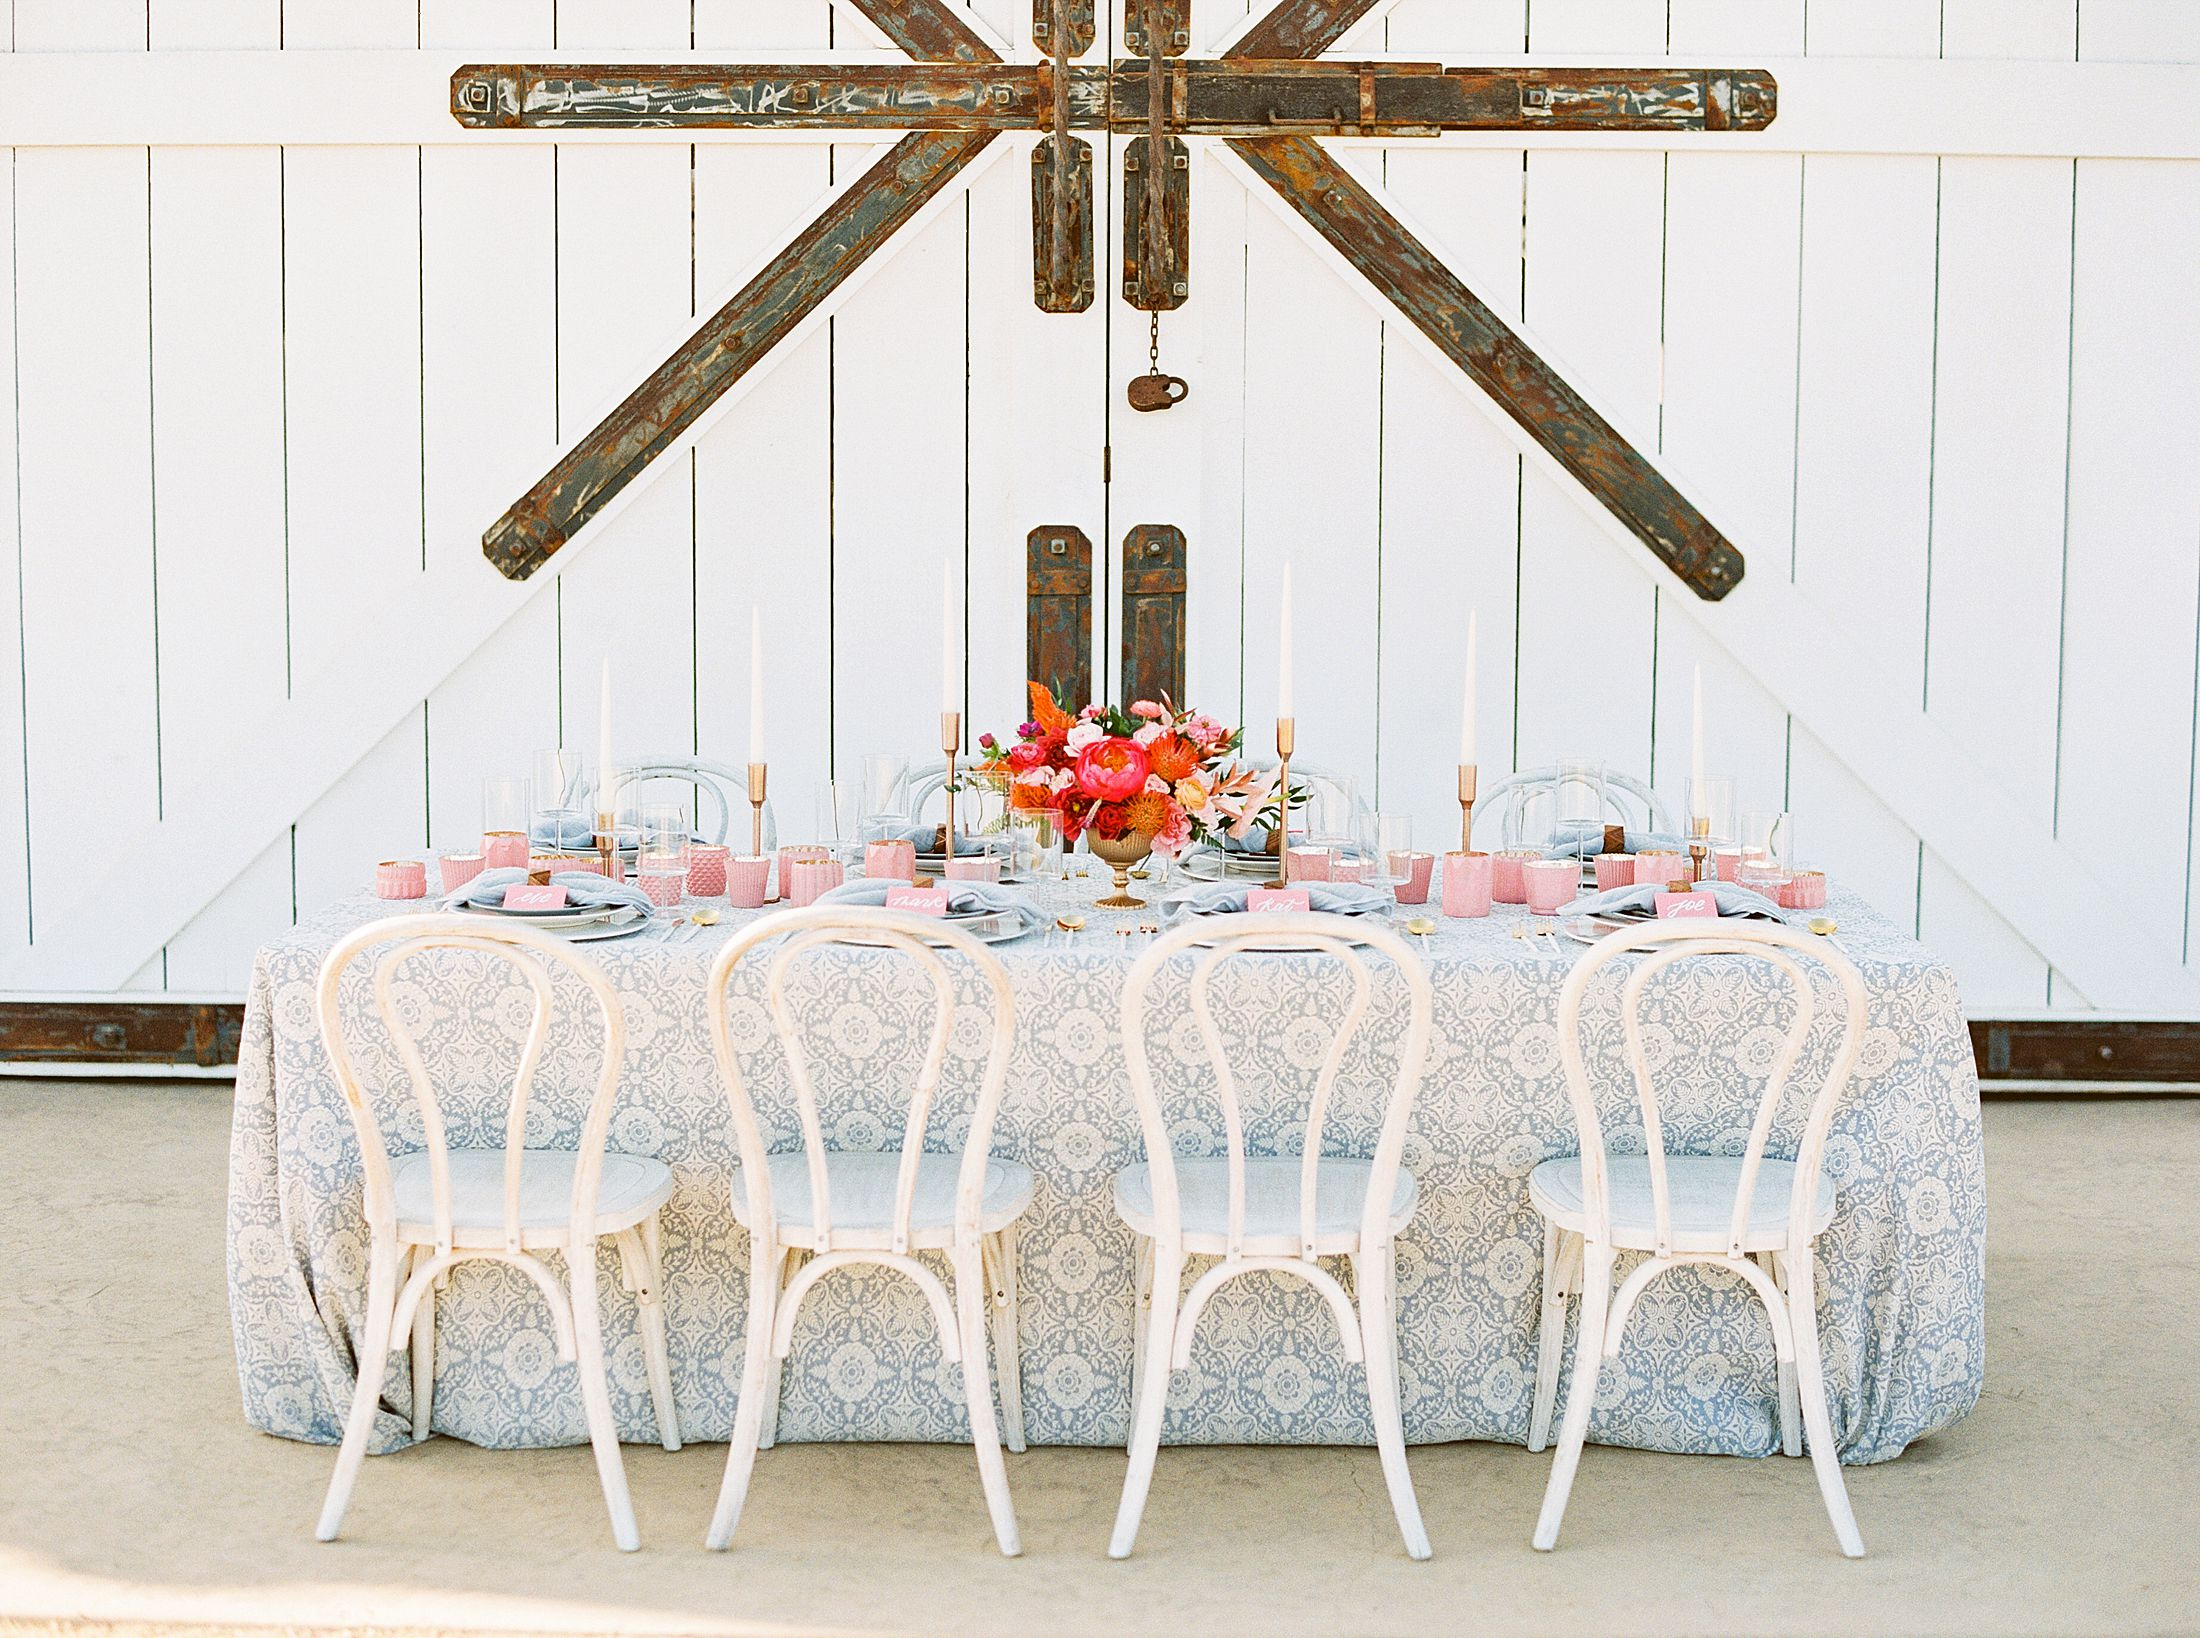 White Barn Edna Valley Wedding Inspiration - San Luis Obispo Wedding - Featured on Green Wedding Shoes - Ashley Baumgartner - FM Events SLO - SLO Wedding Photographer_0016.jpg